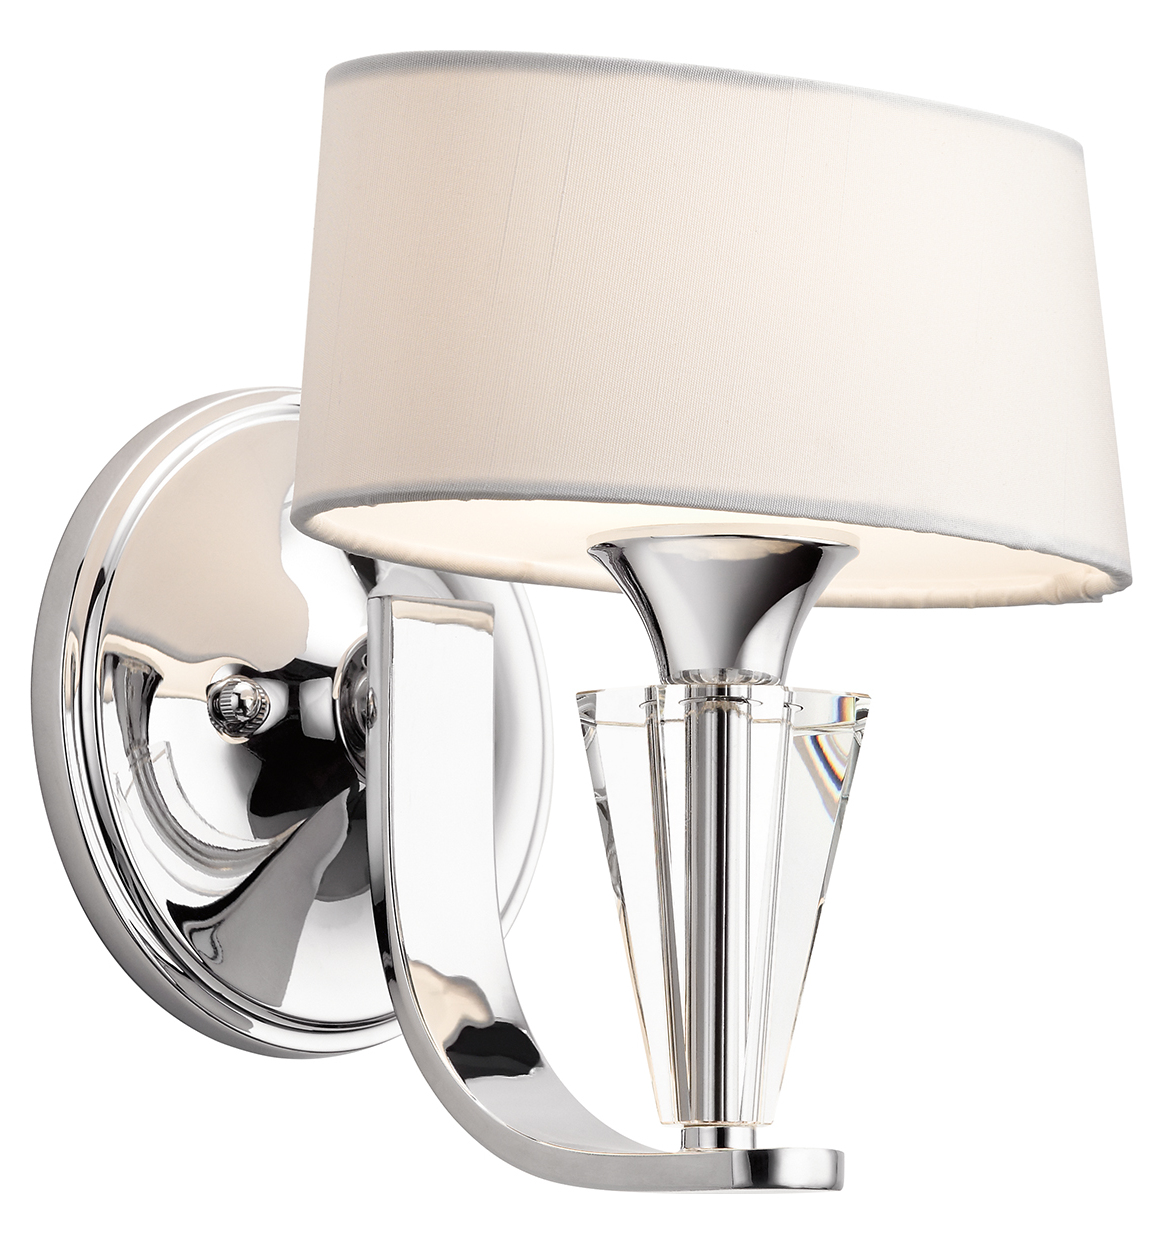 Kichler Chrome Modern 1 Light Up Lighting Wall Sconce